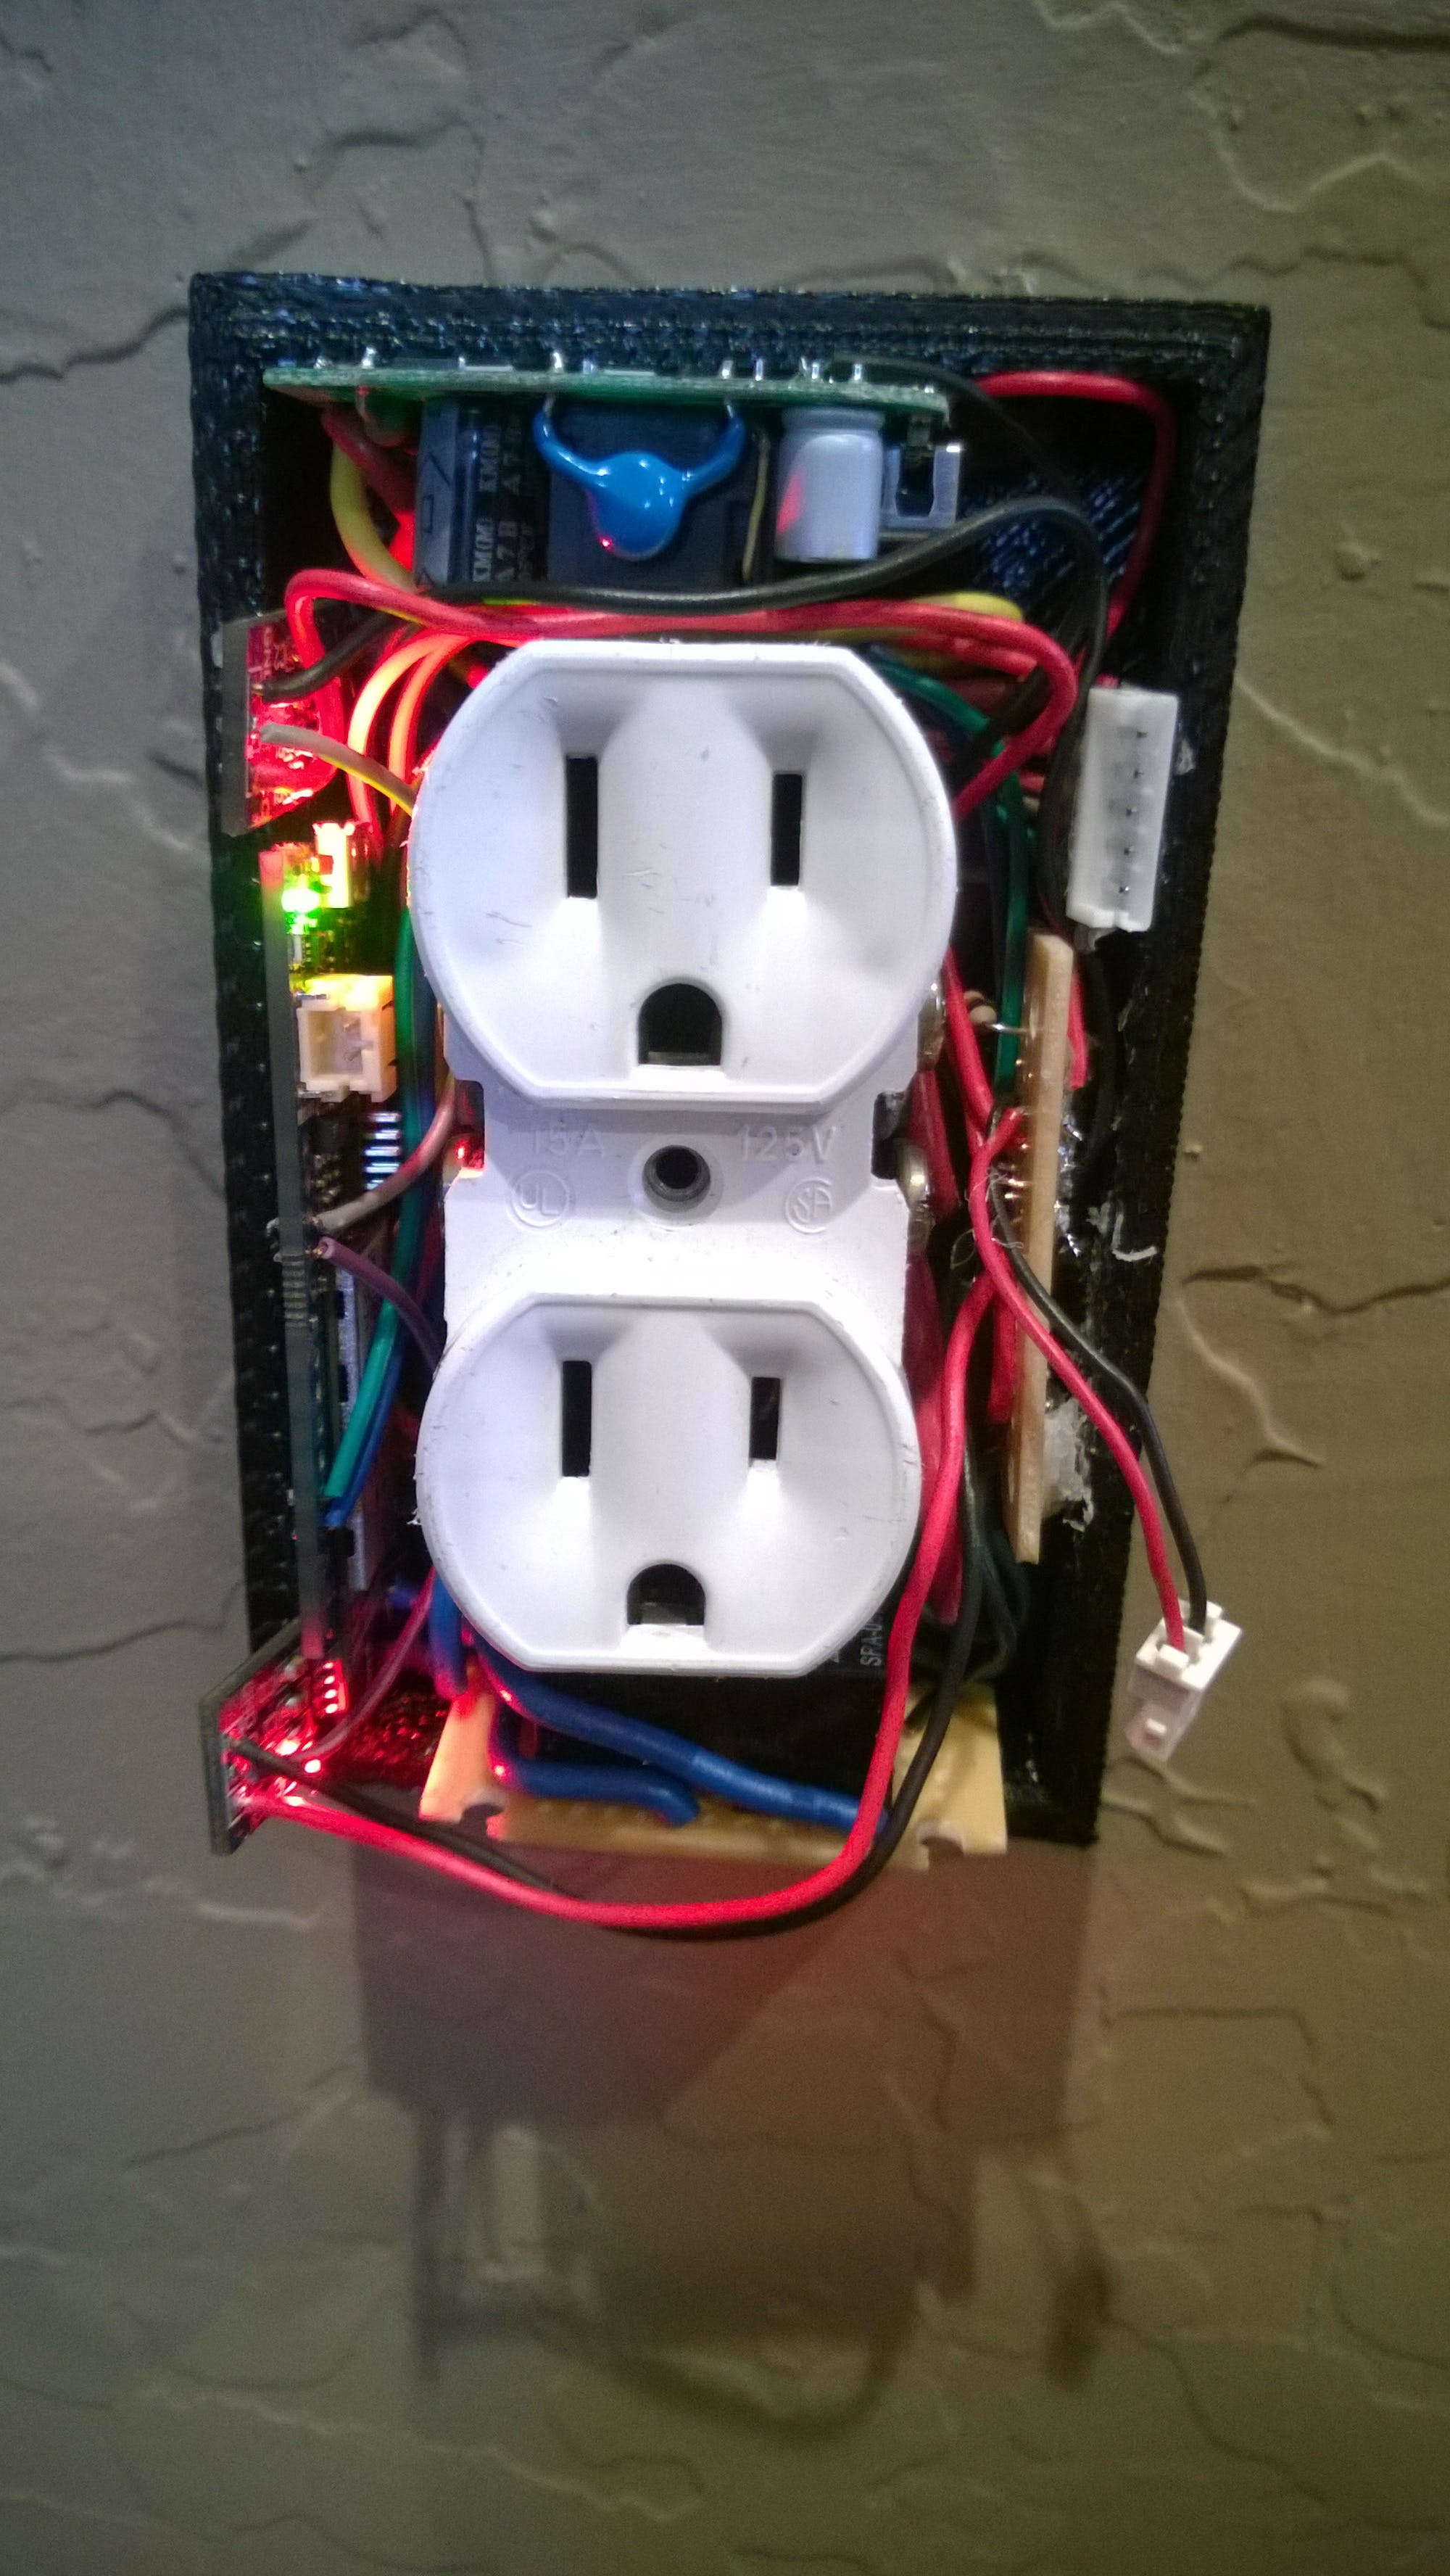 outlet with the cover off